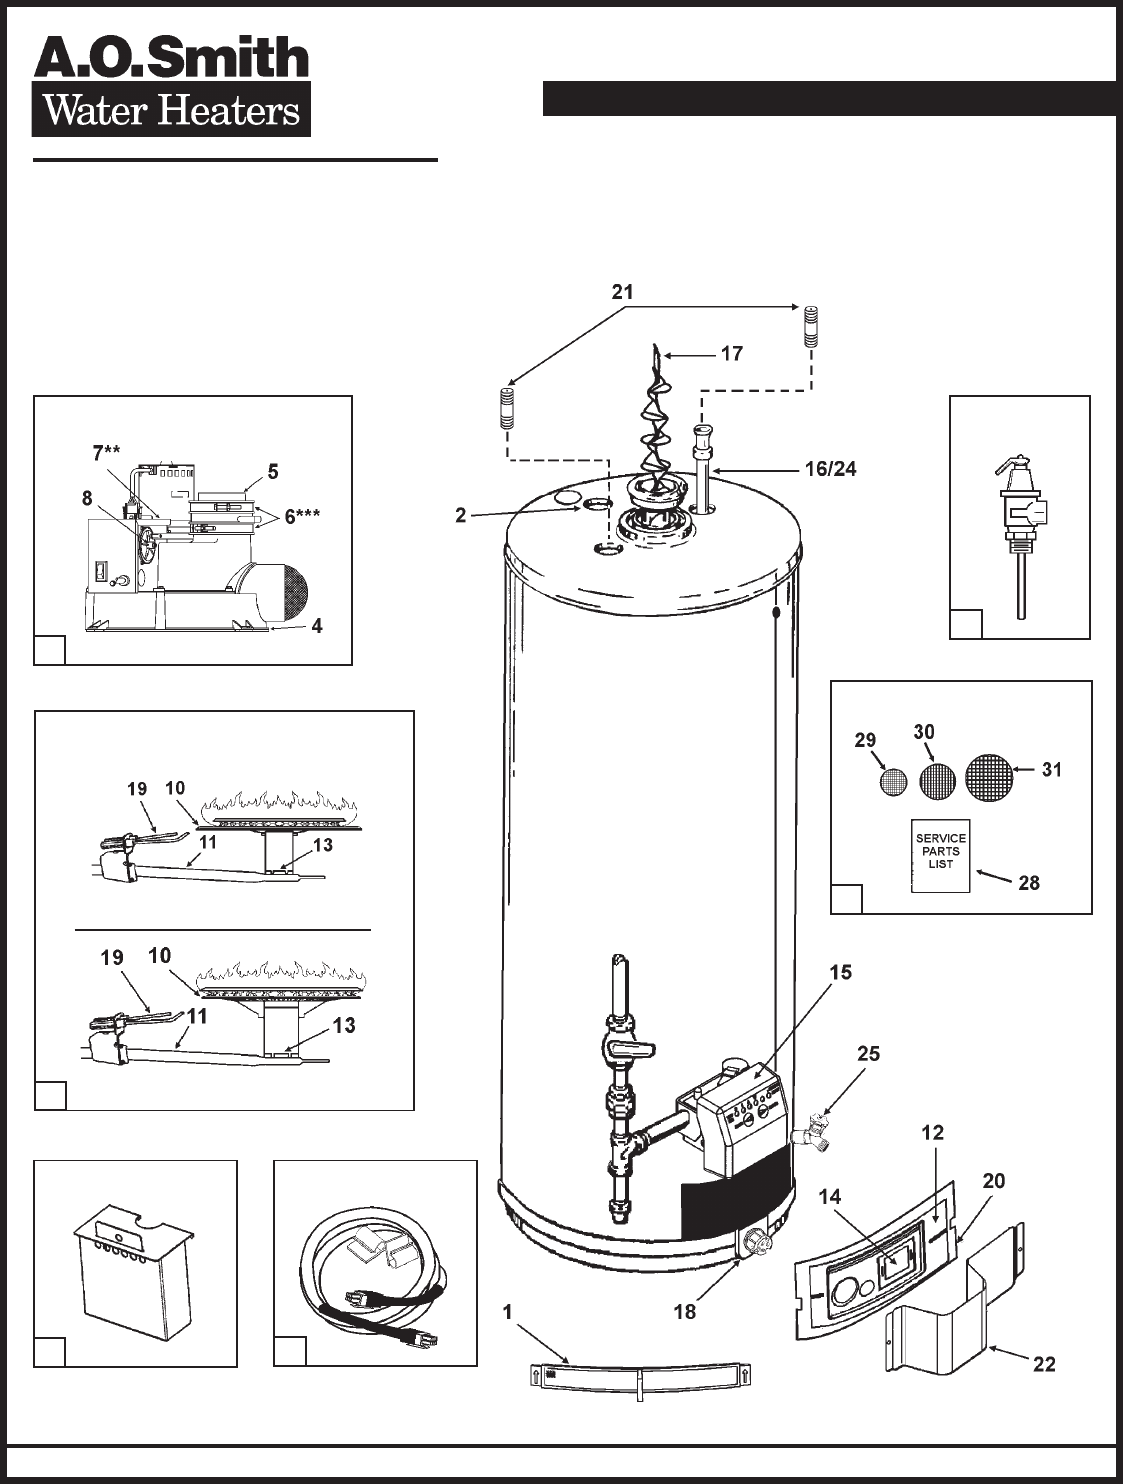 Typical Hot Water Heater Wiring Schematic